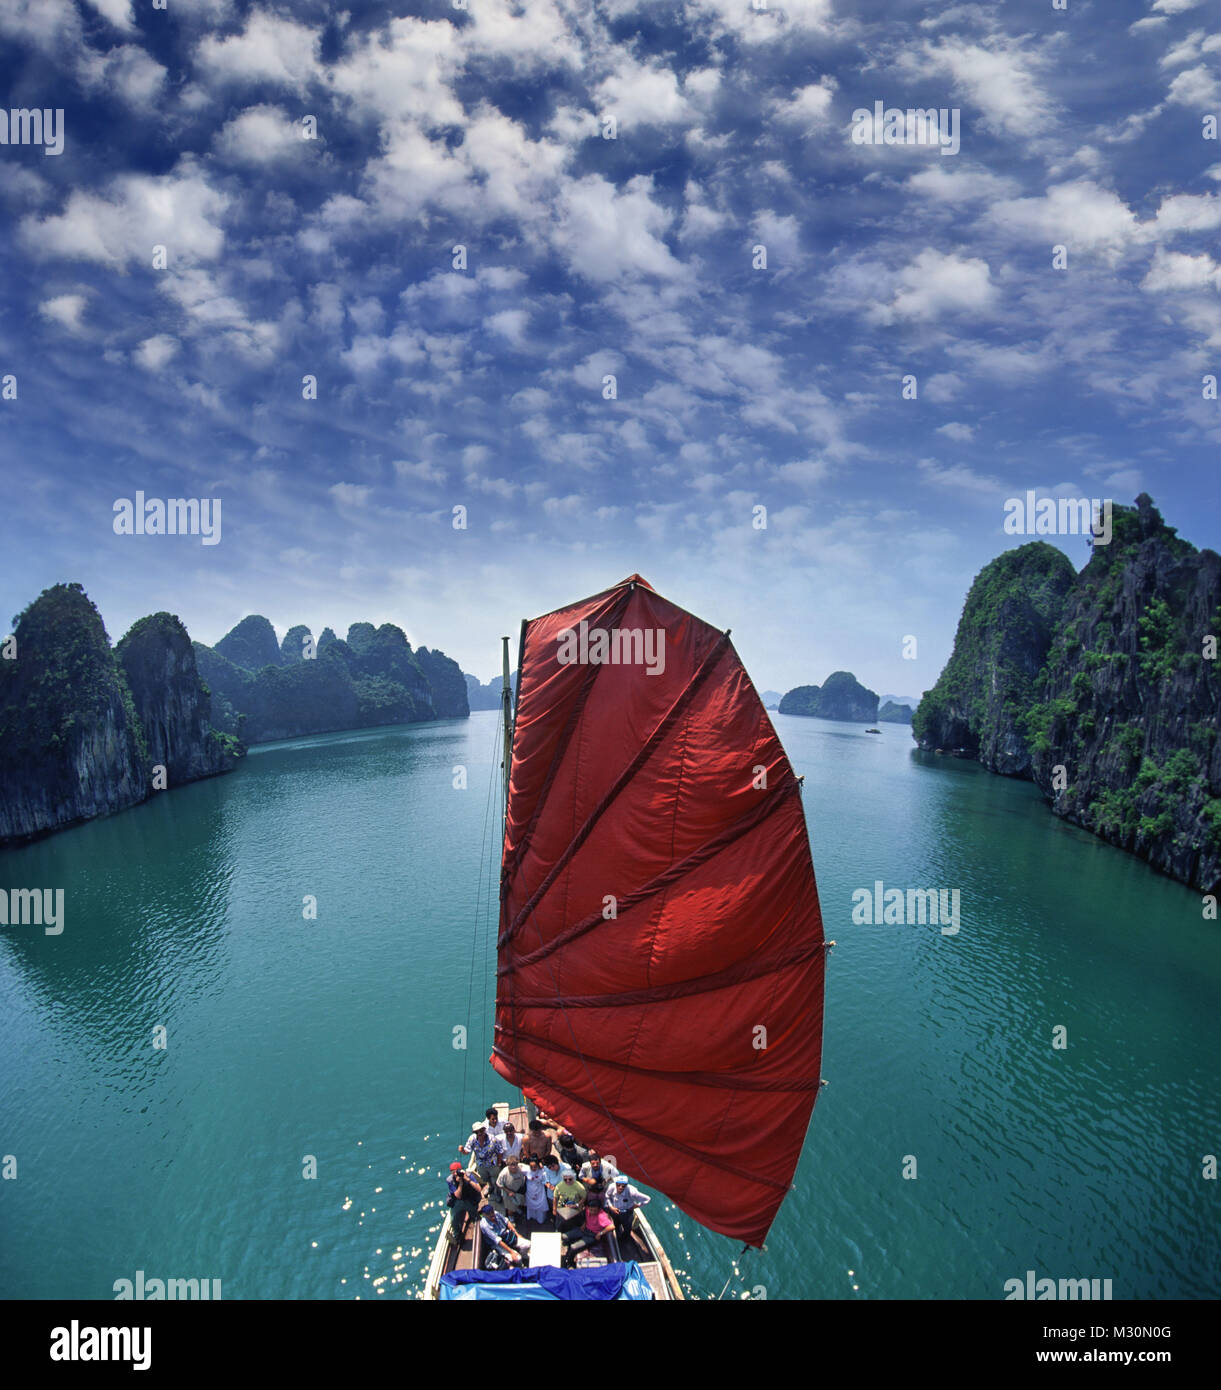 Junk in Halong Bay, Vietnam, Indochina - Stock Image